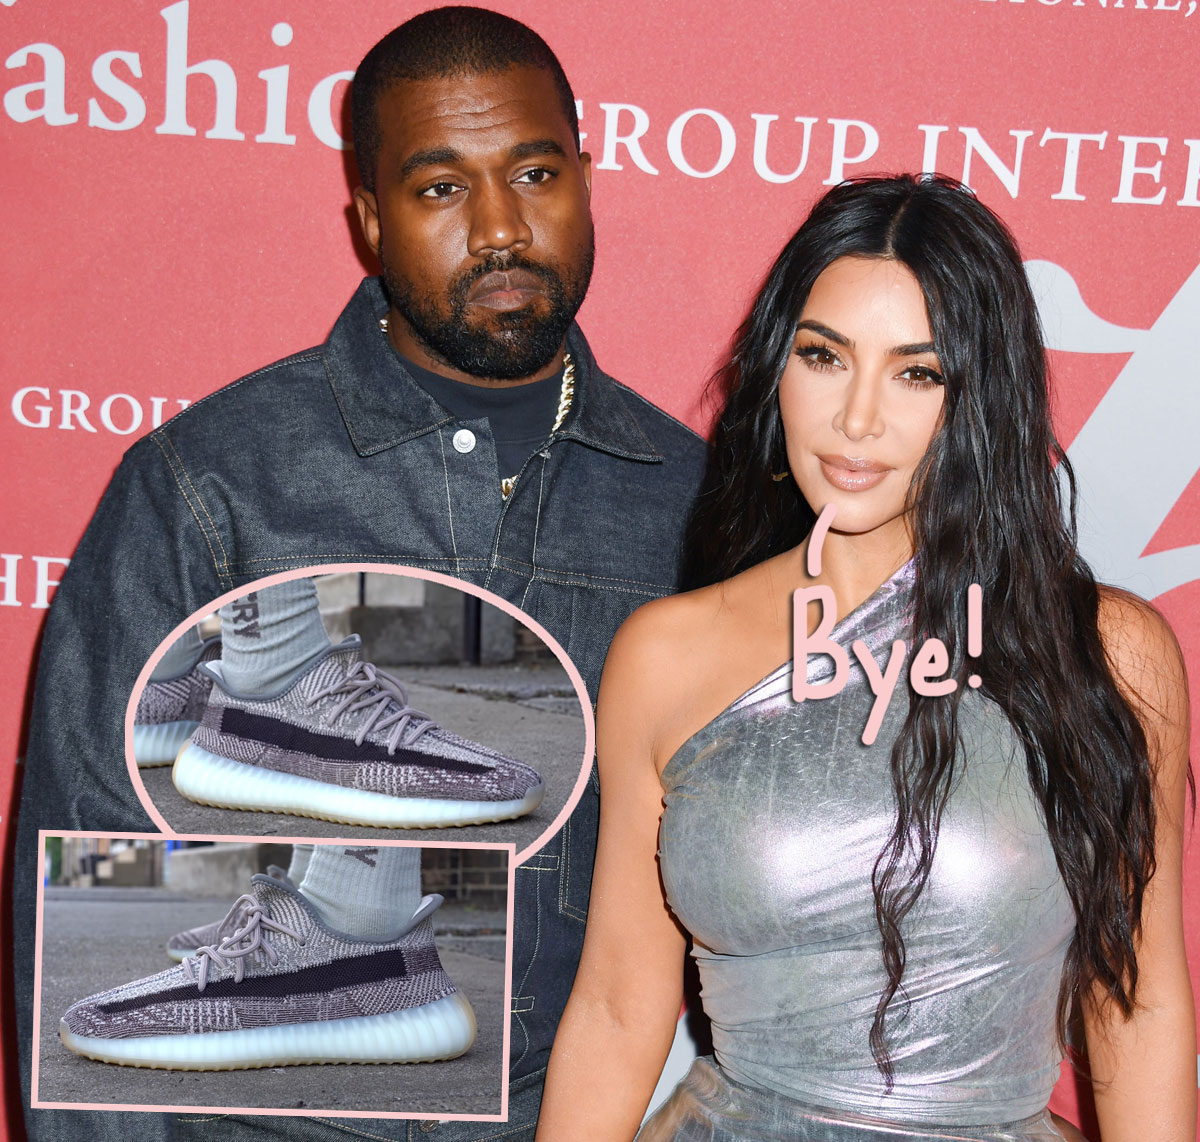 Kanye West Moves His HUGE Sneaker Collection Out Of Kim Kardashian's House As They're 'Completely Done And No Longer Speaking'